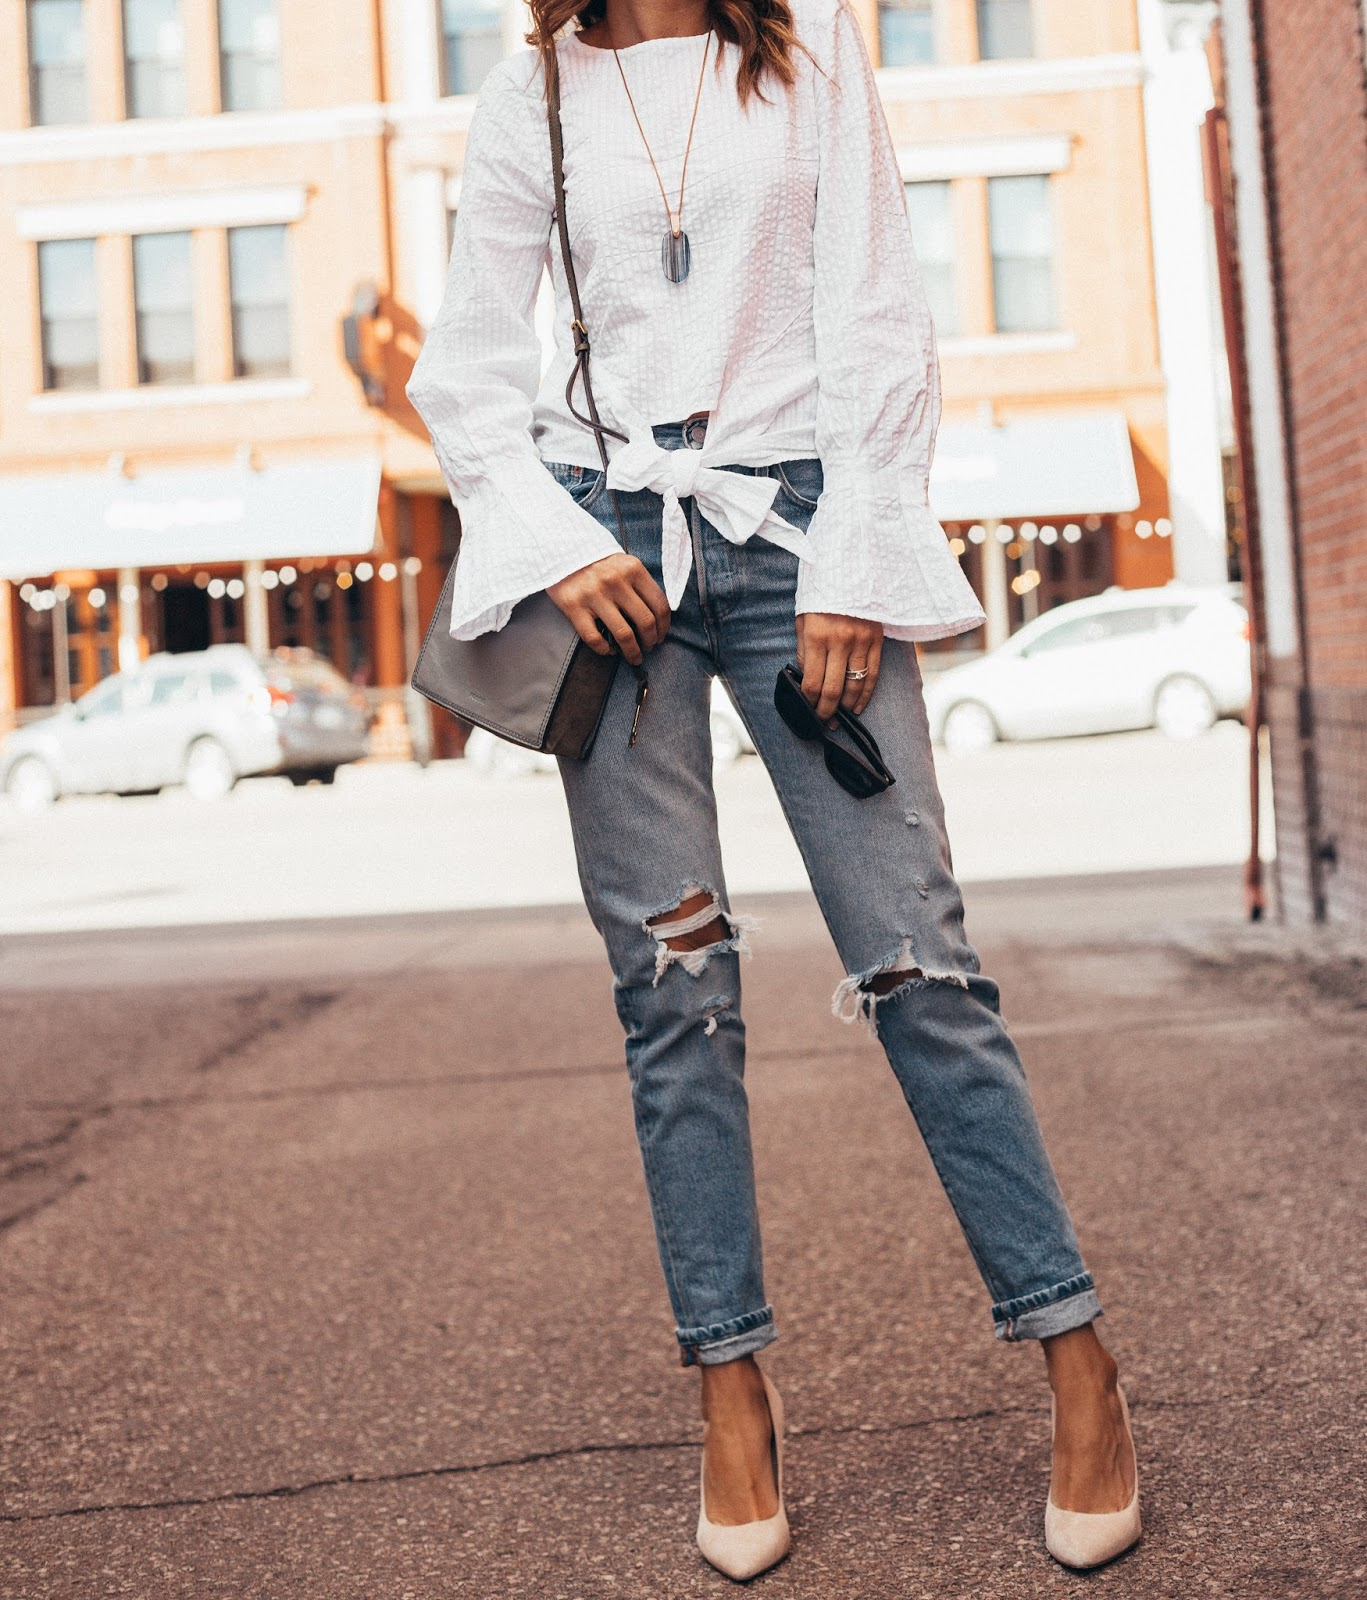 5 Cute White Tops For Spring by popular Colorado style blogger Eat Pray Wear Love